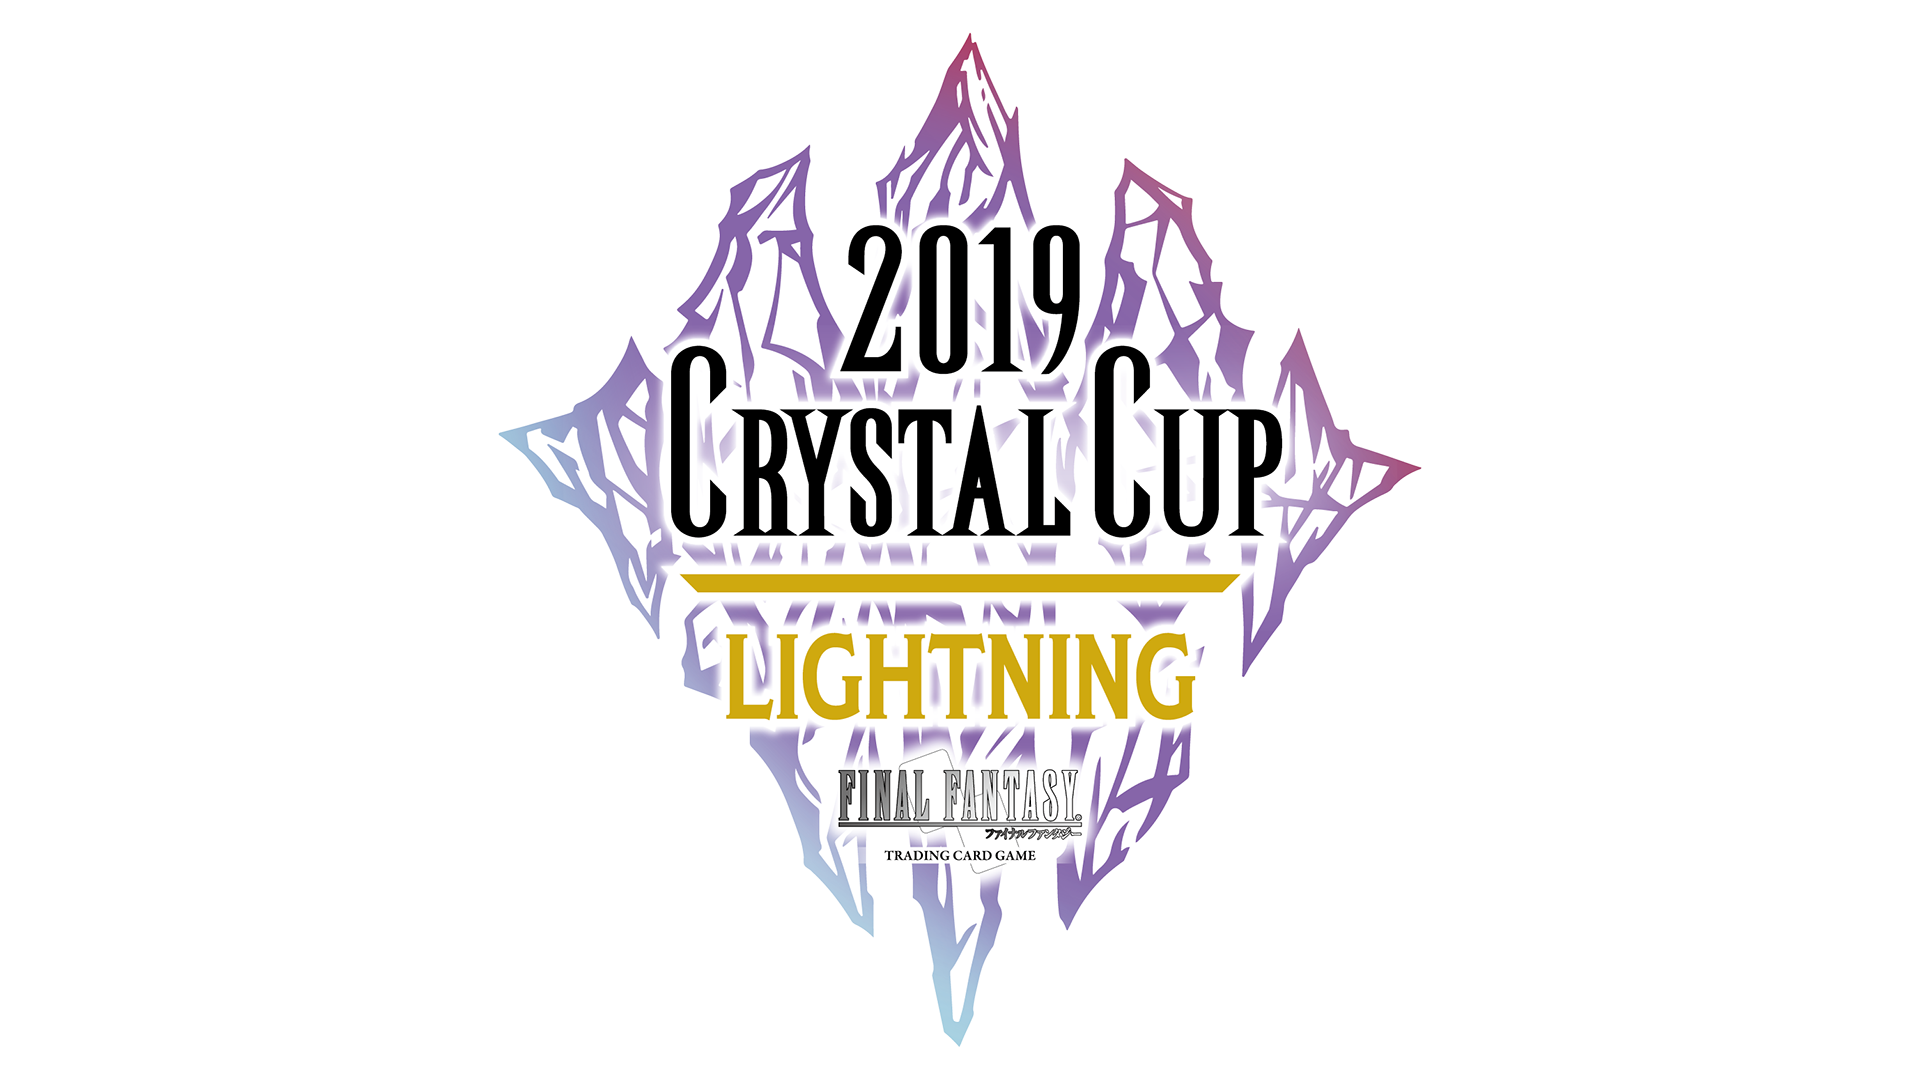 Crystal Cup - Lightning and Fire